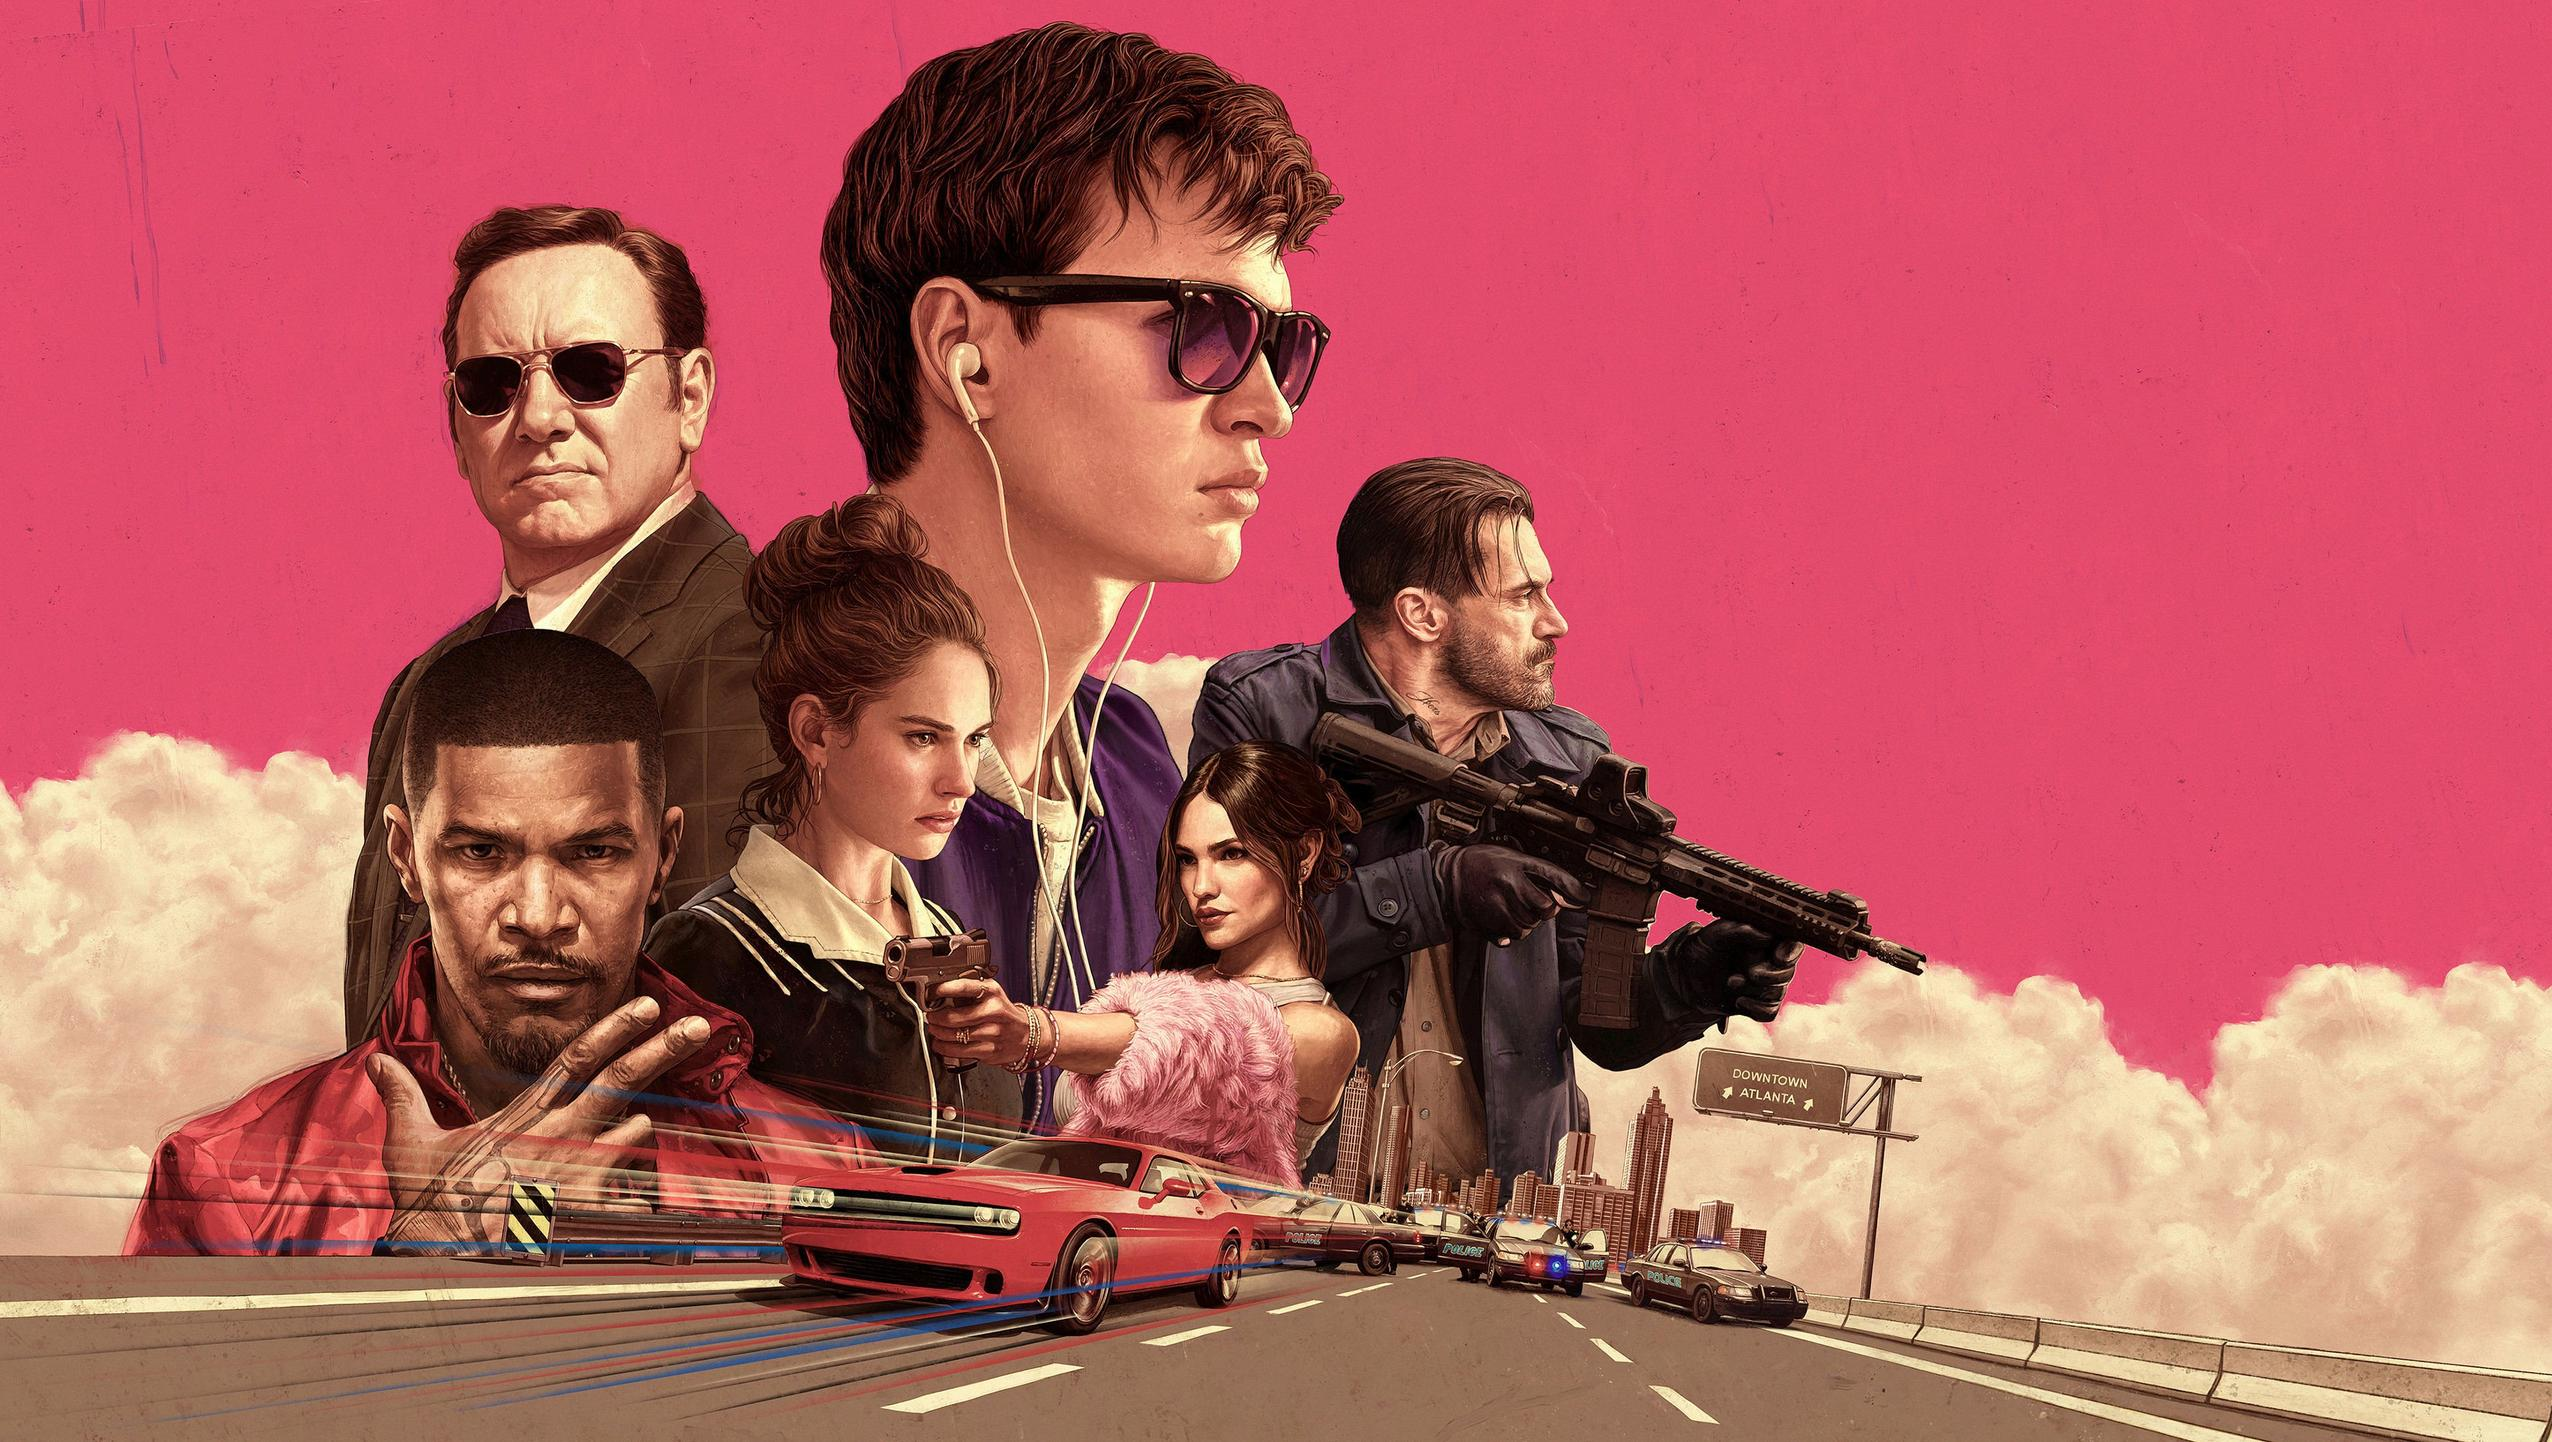 Baby Driver 2017 Desktop Wallpaper Moviemania 2552x1442